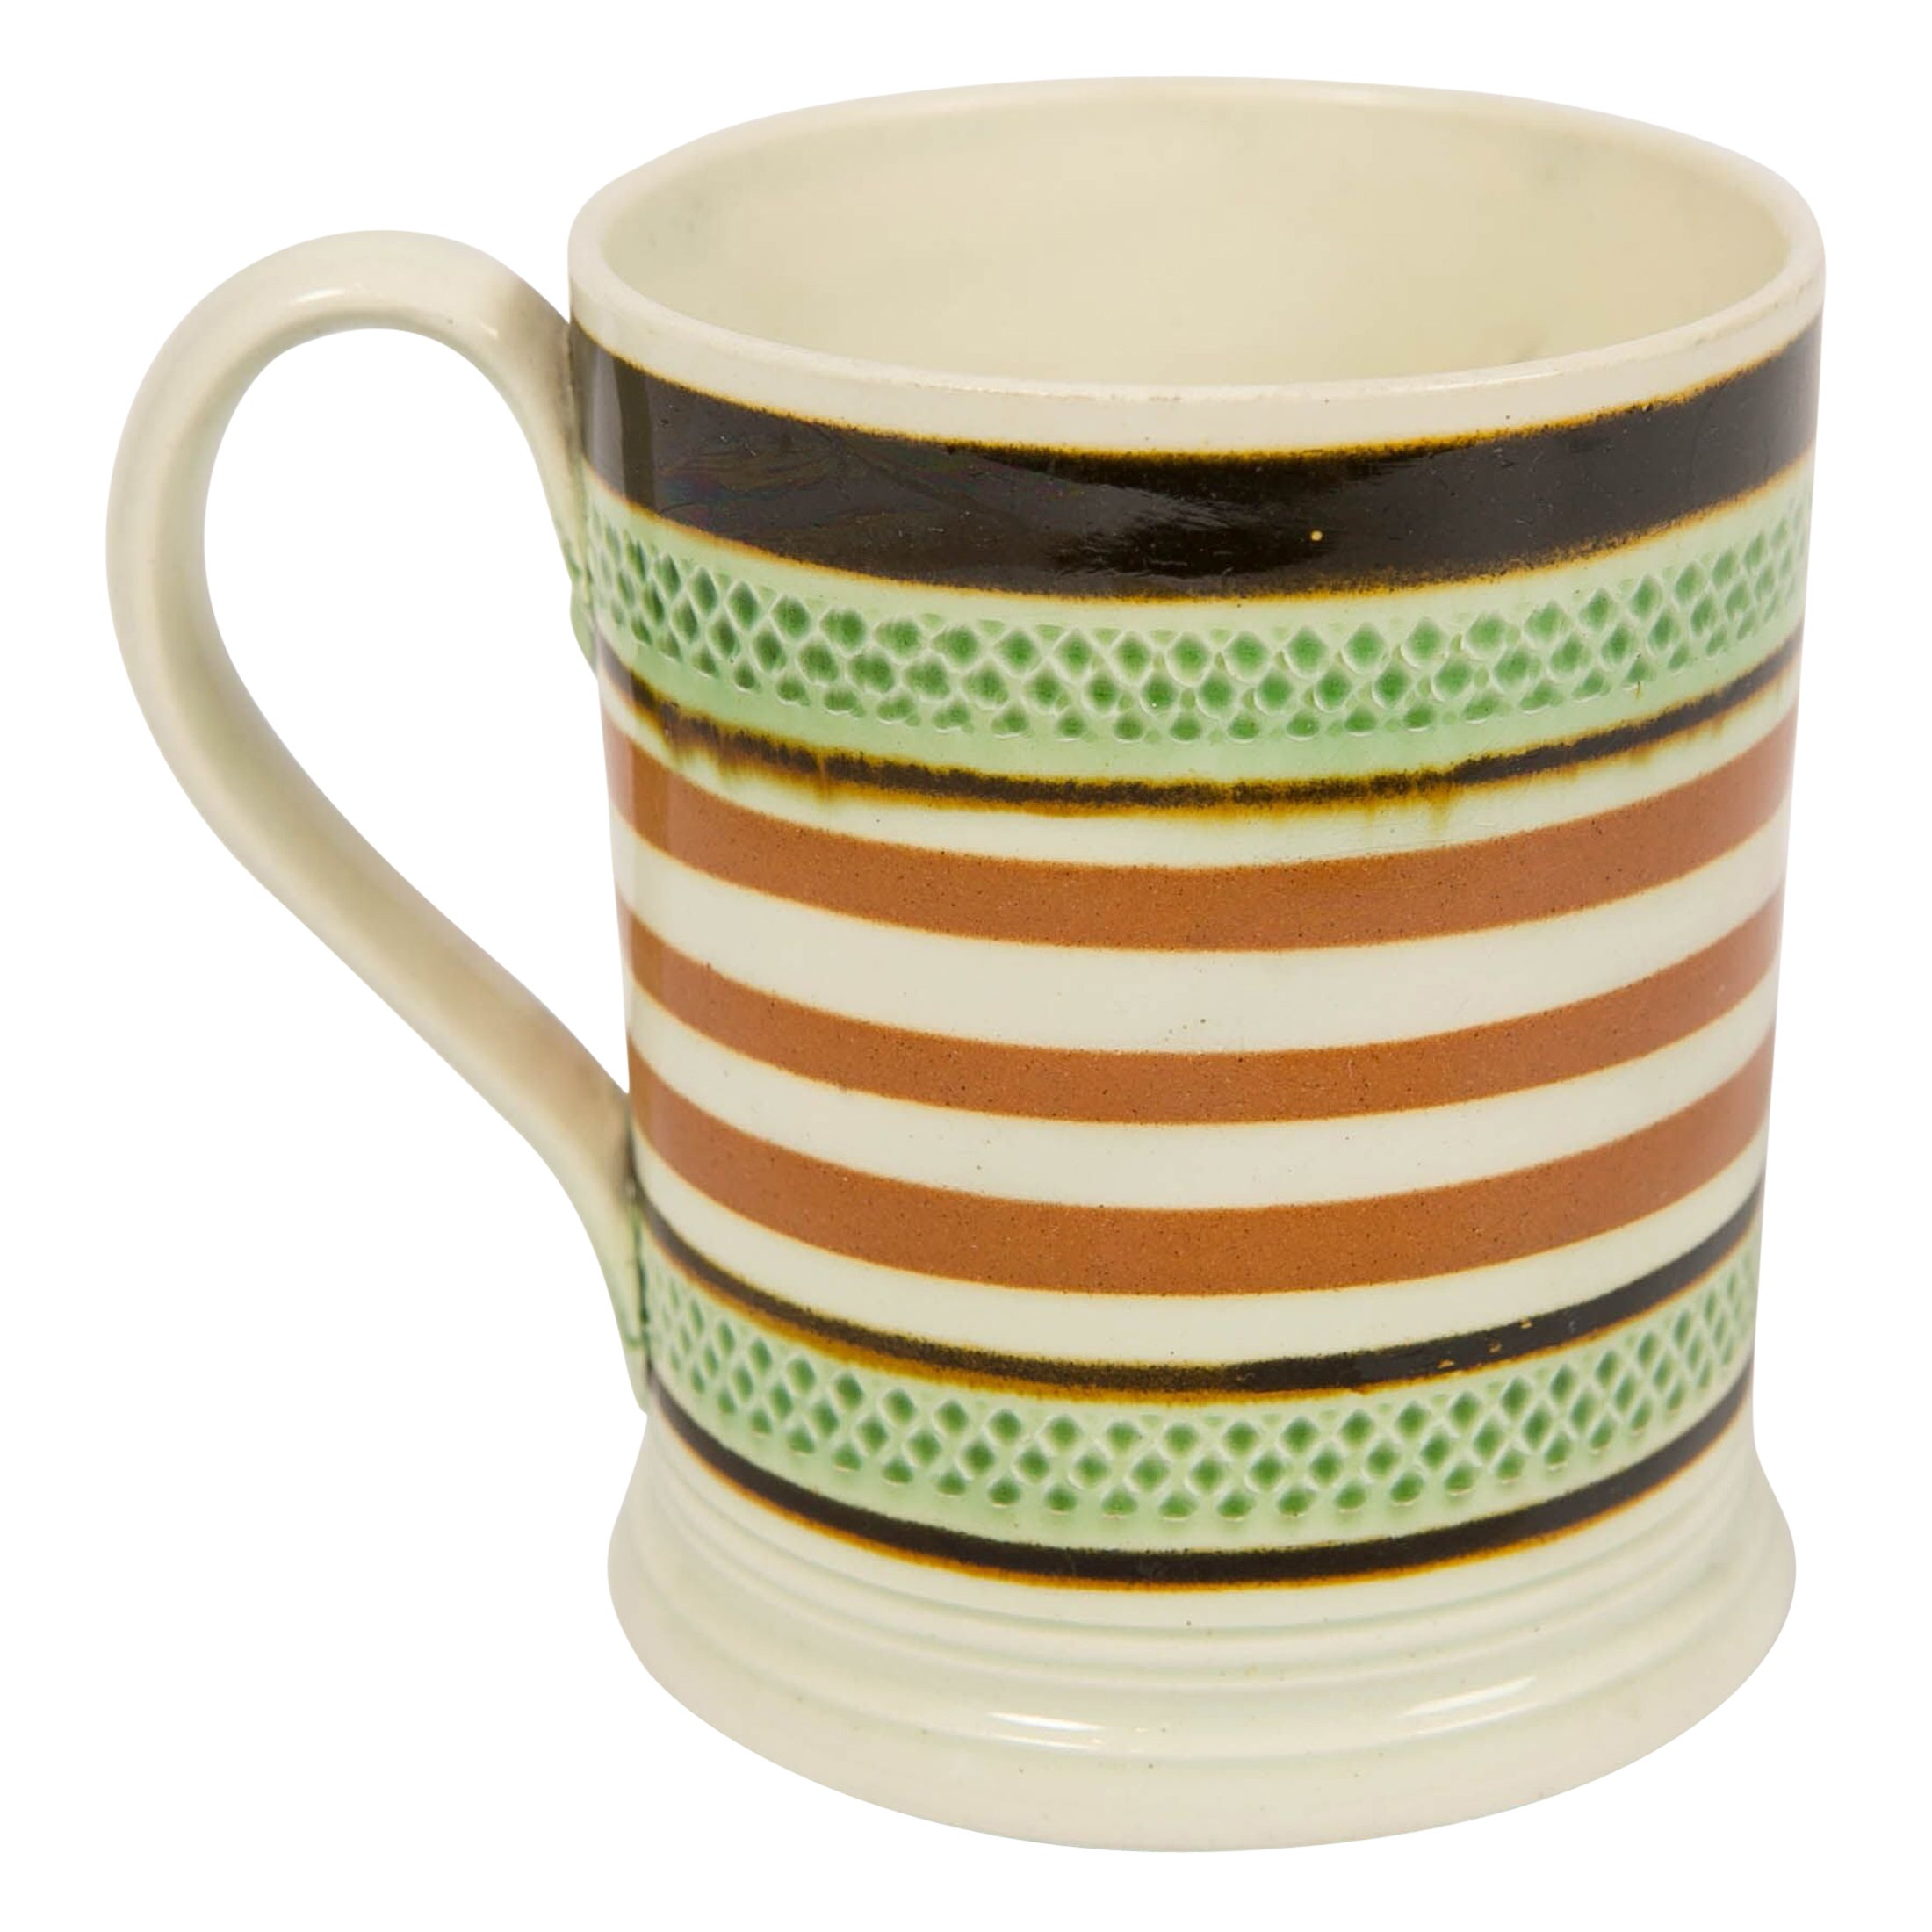 Mochaware Mug Banded with Green Glaze and Brown Slip, England, circa 1810